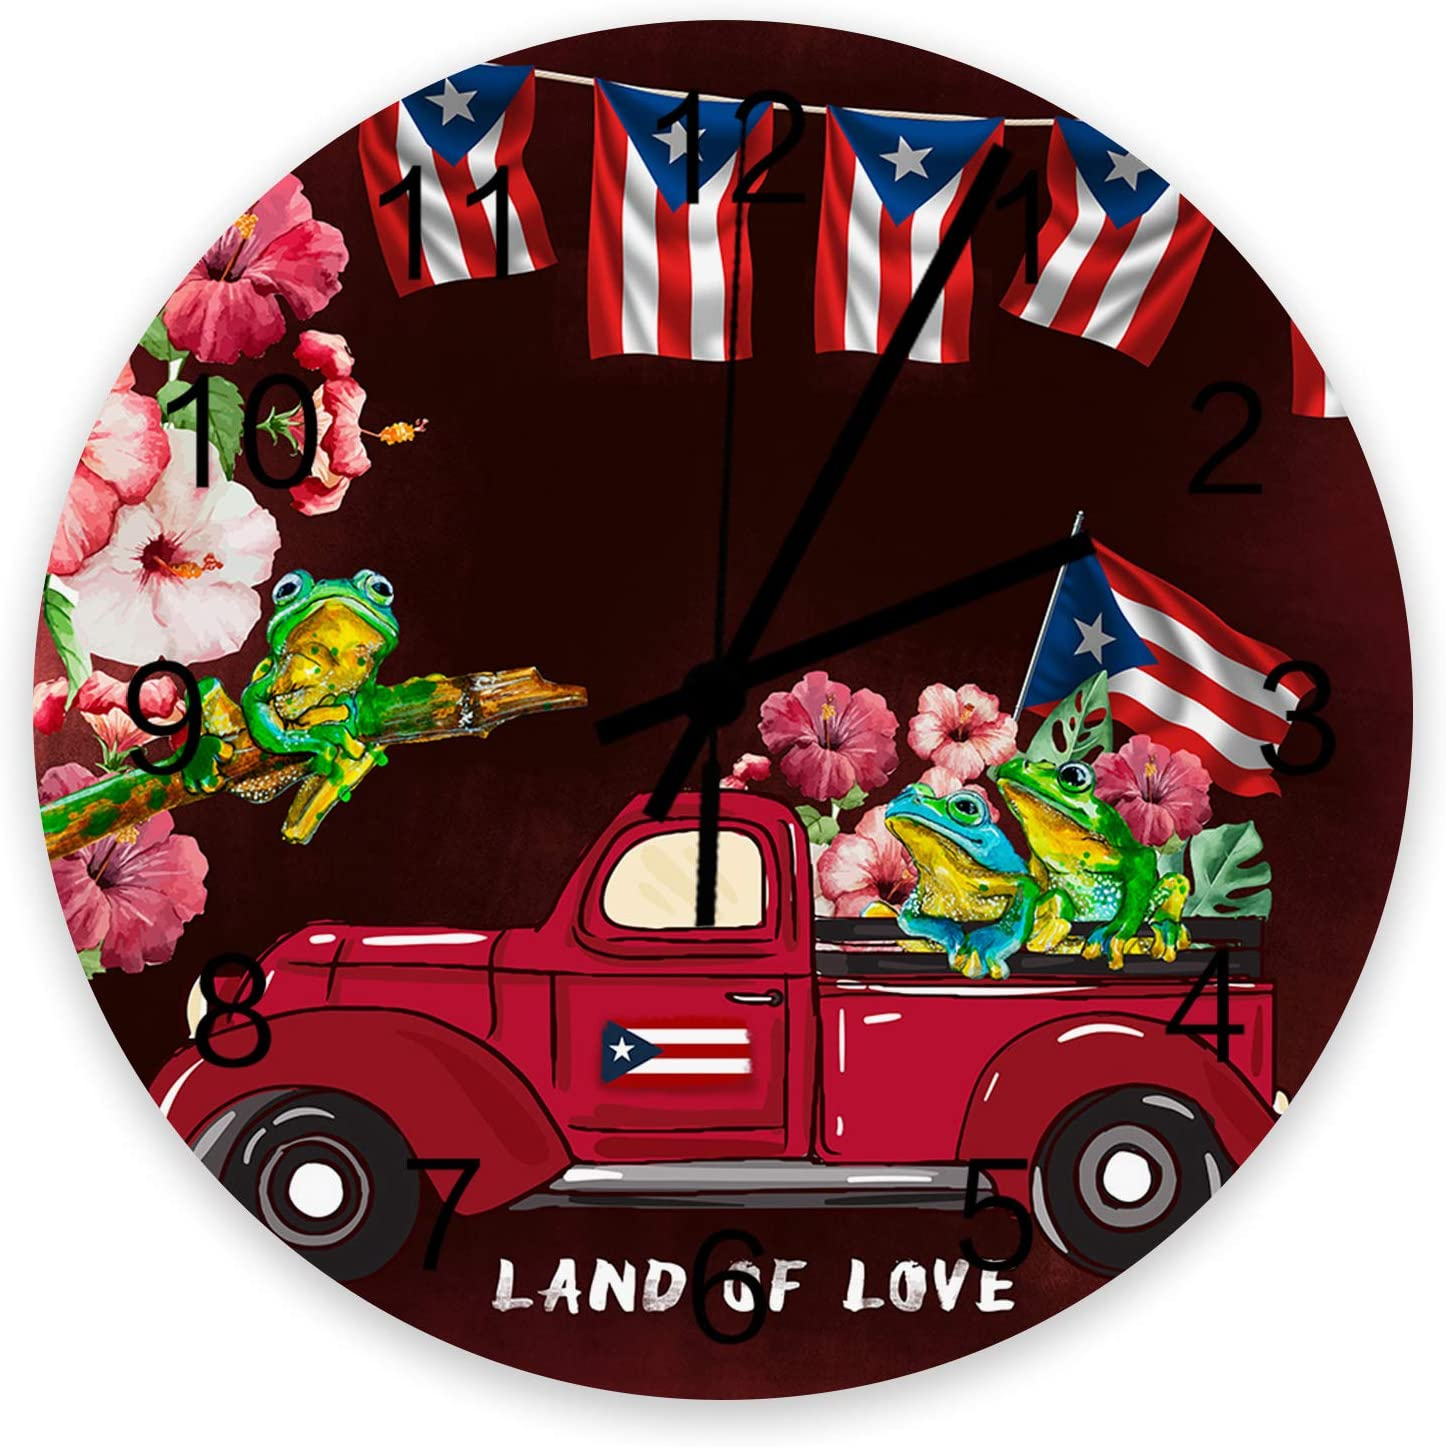 Roses Garden 12 Inch Wooden Wall Flag Excellent Rico Tru Puerto Red Clock Ranking TOP3